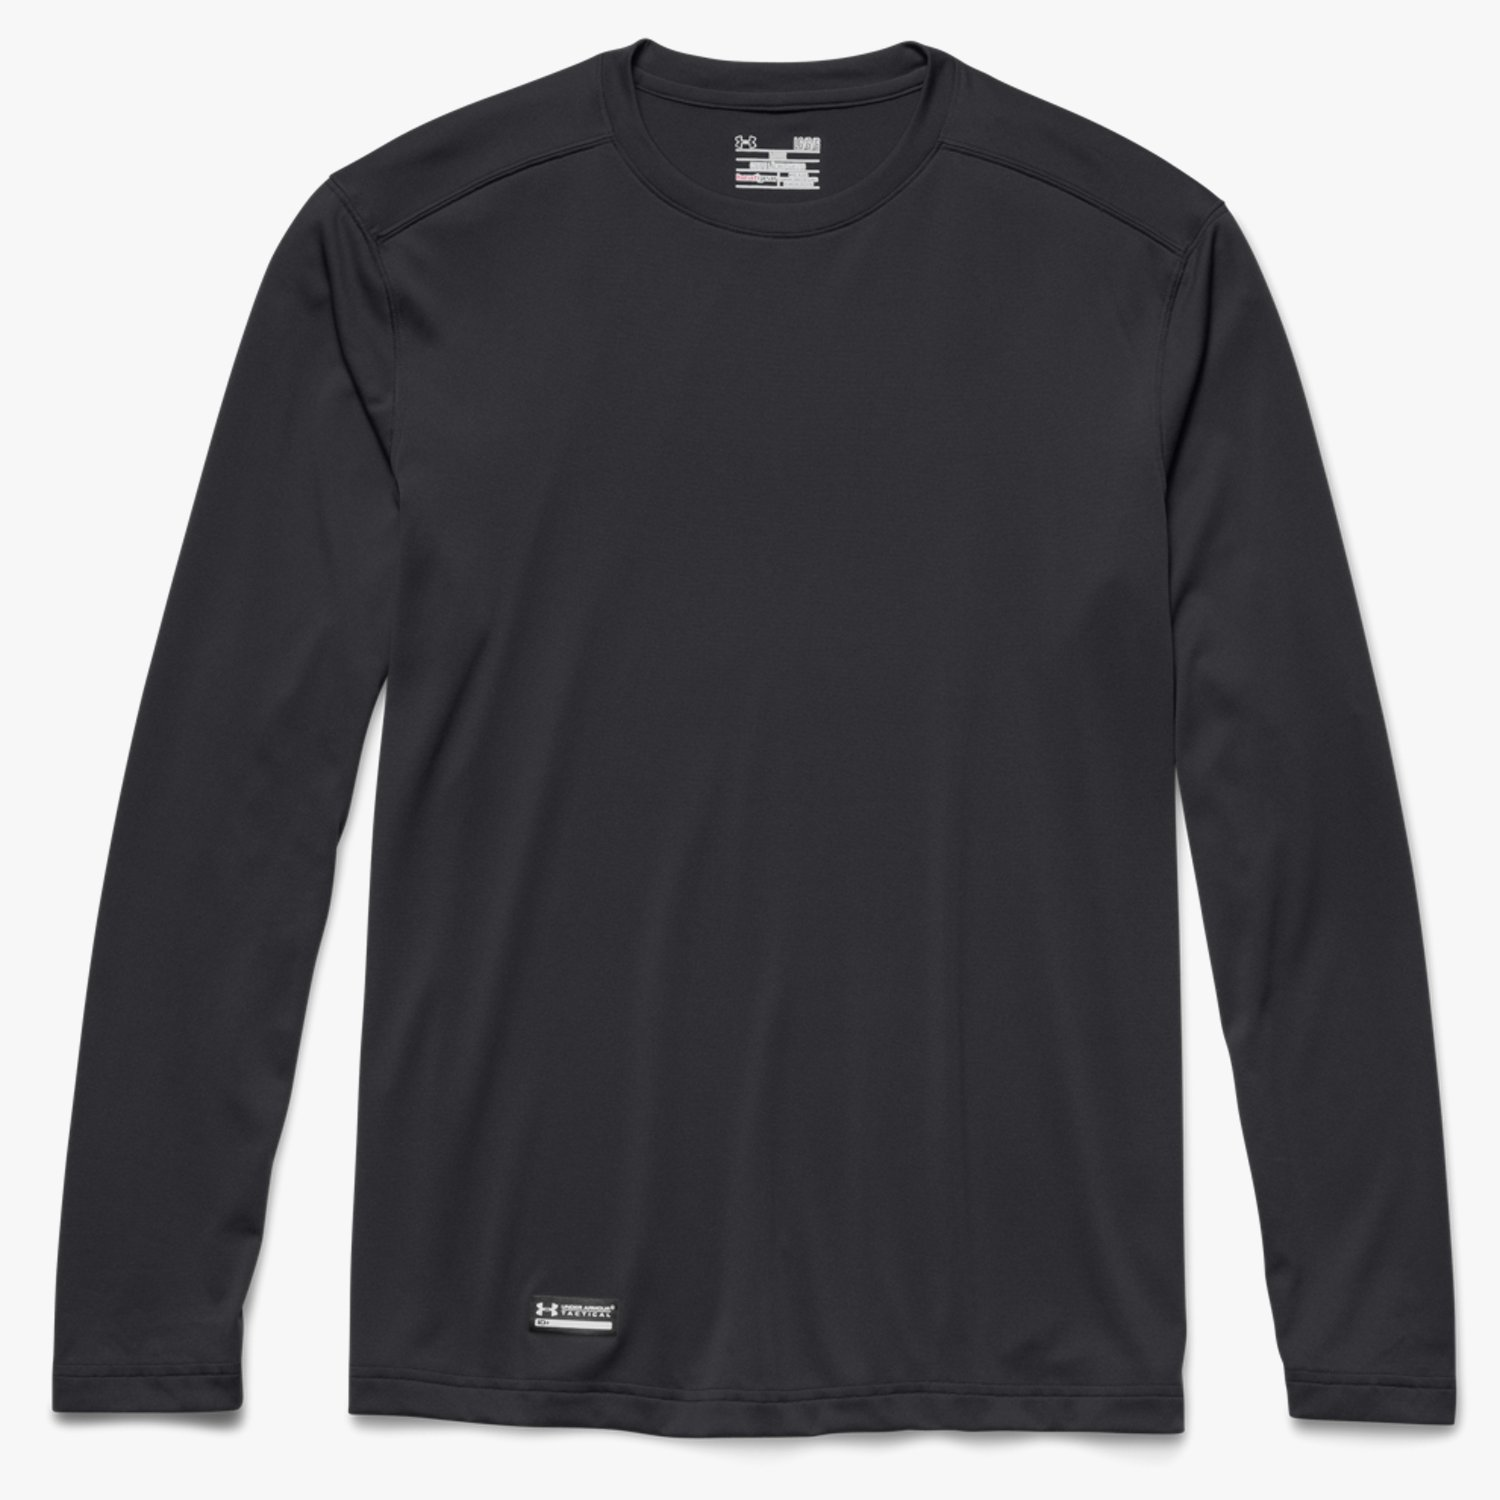 Under Armour Tactical UA Tech Long Sleeve T-Shirt Black-30